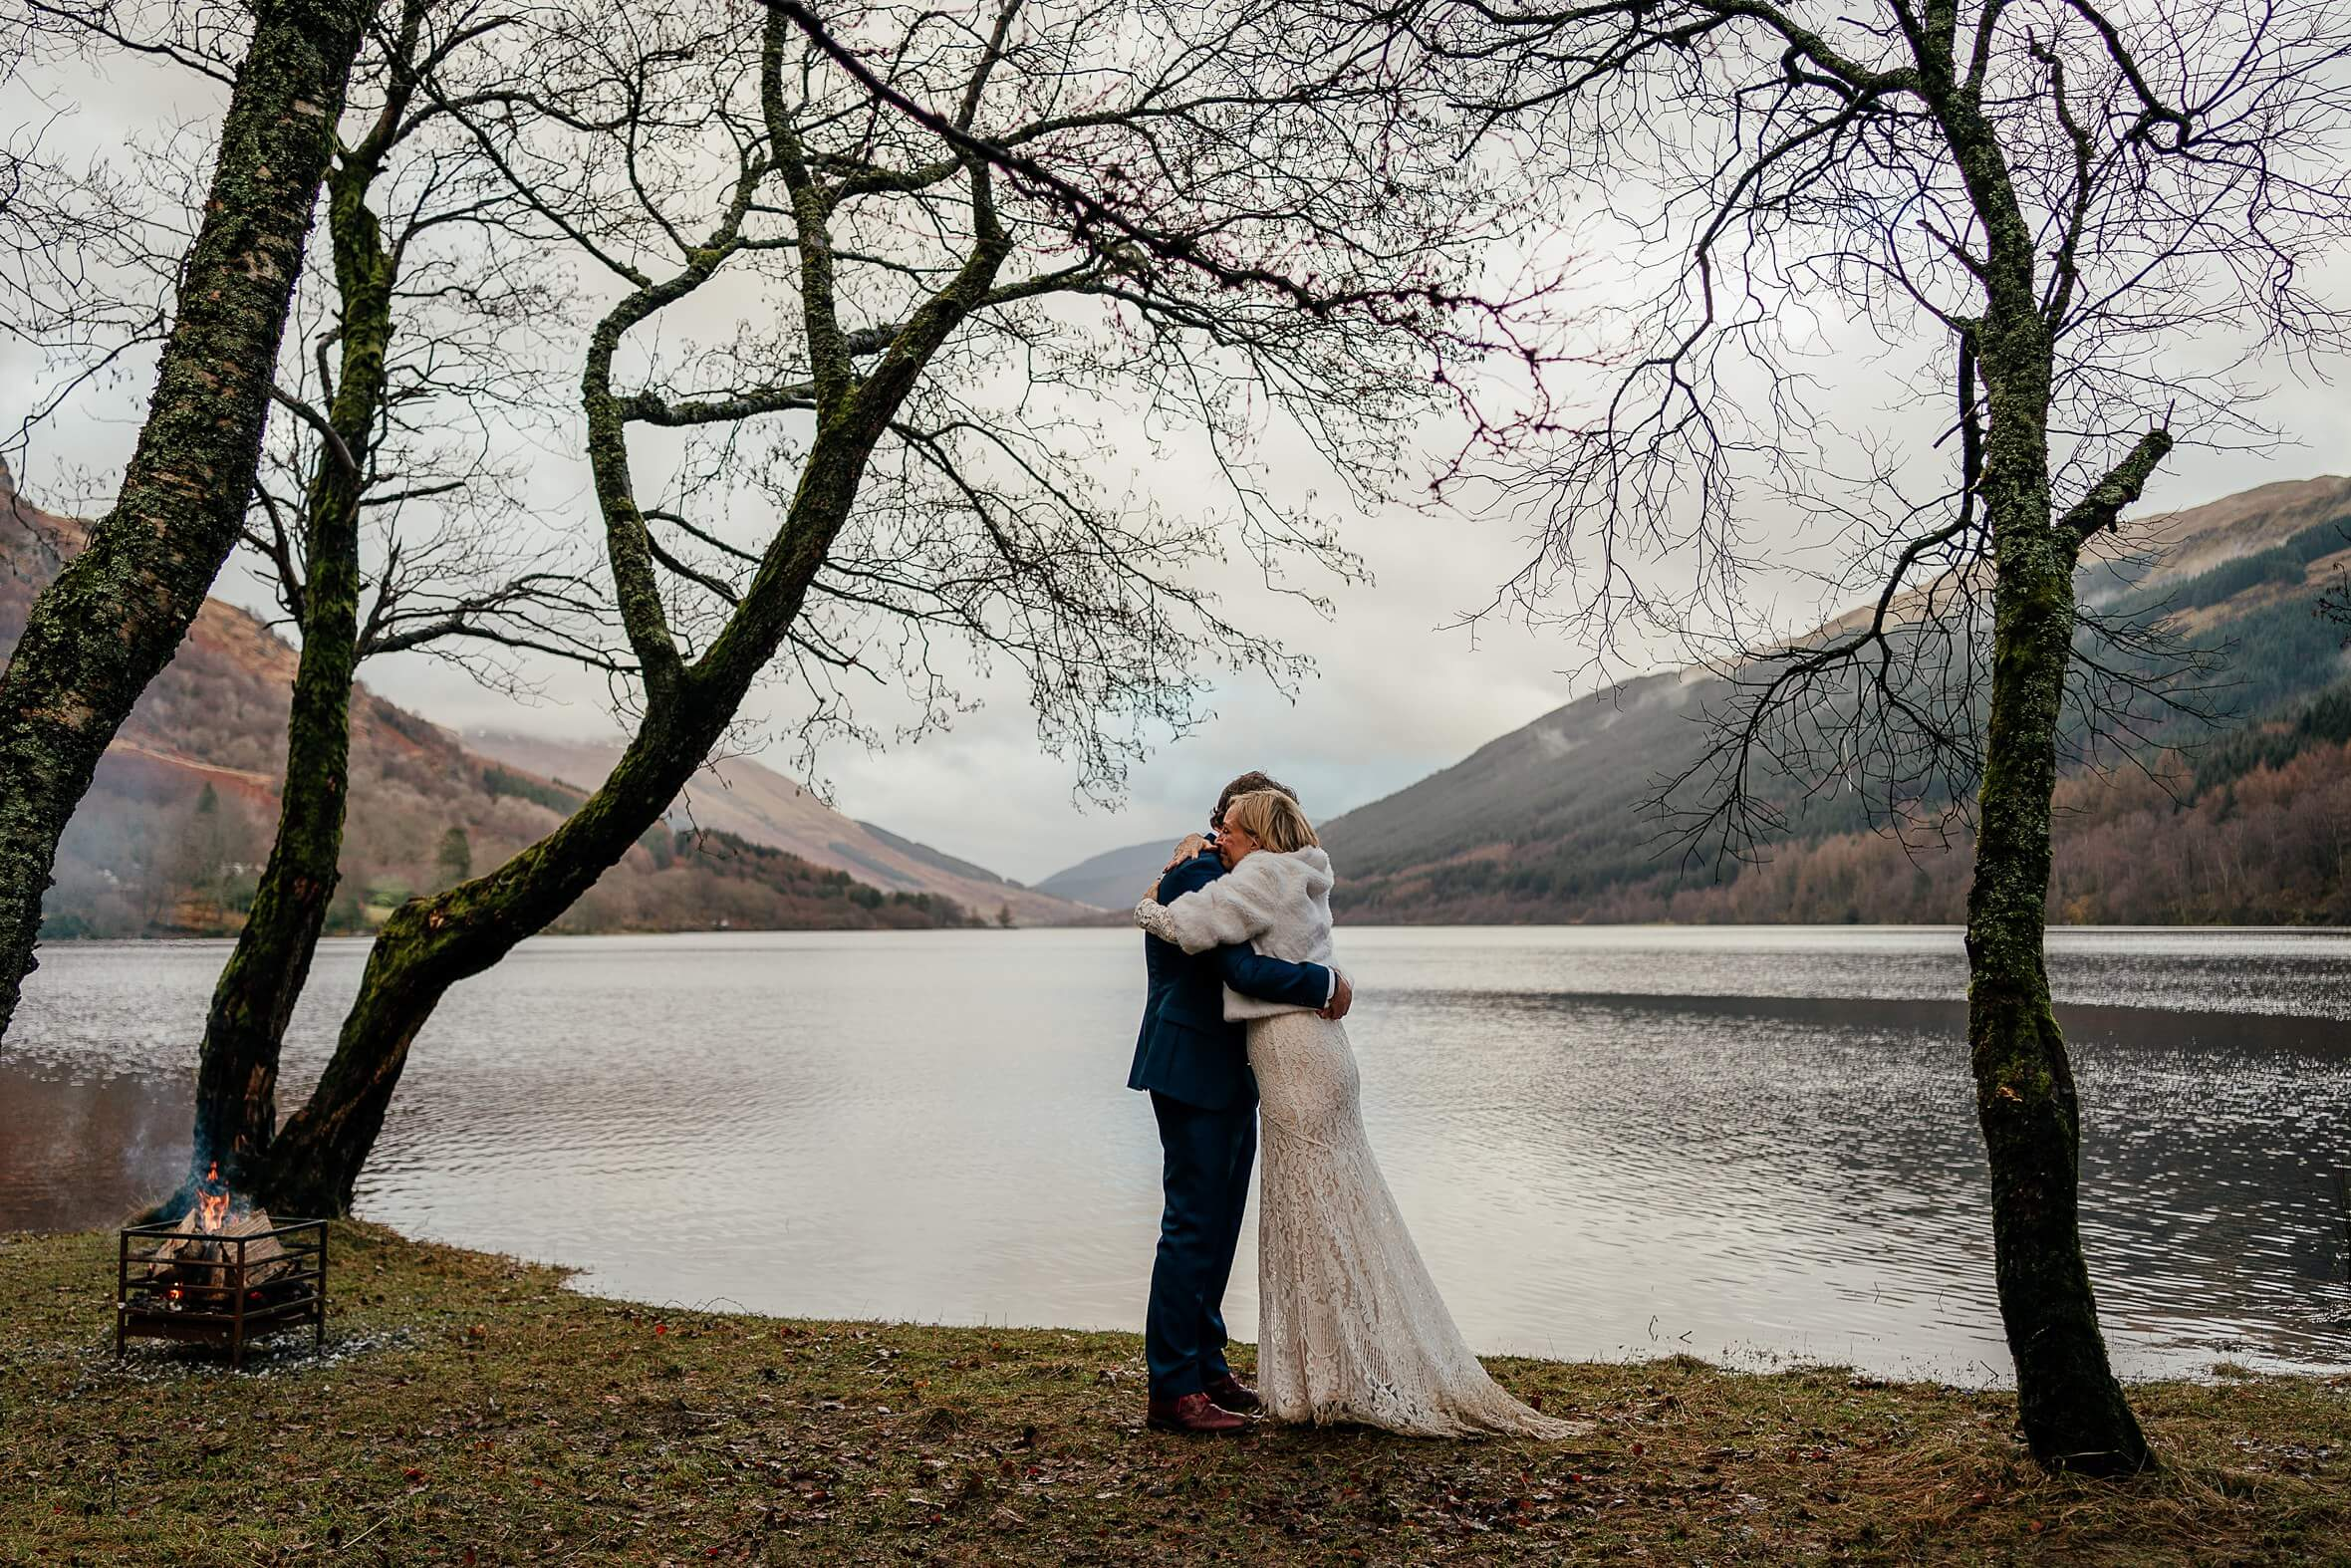 monachyle mhor micro wedding scotland marriage ceremony location loch voil first kiss